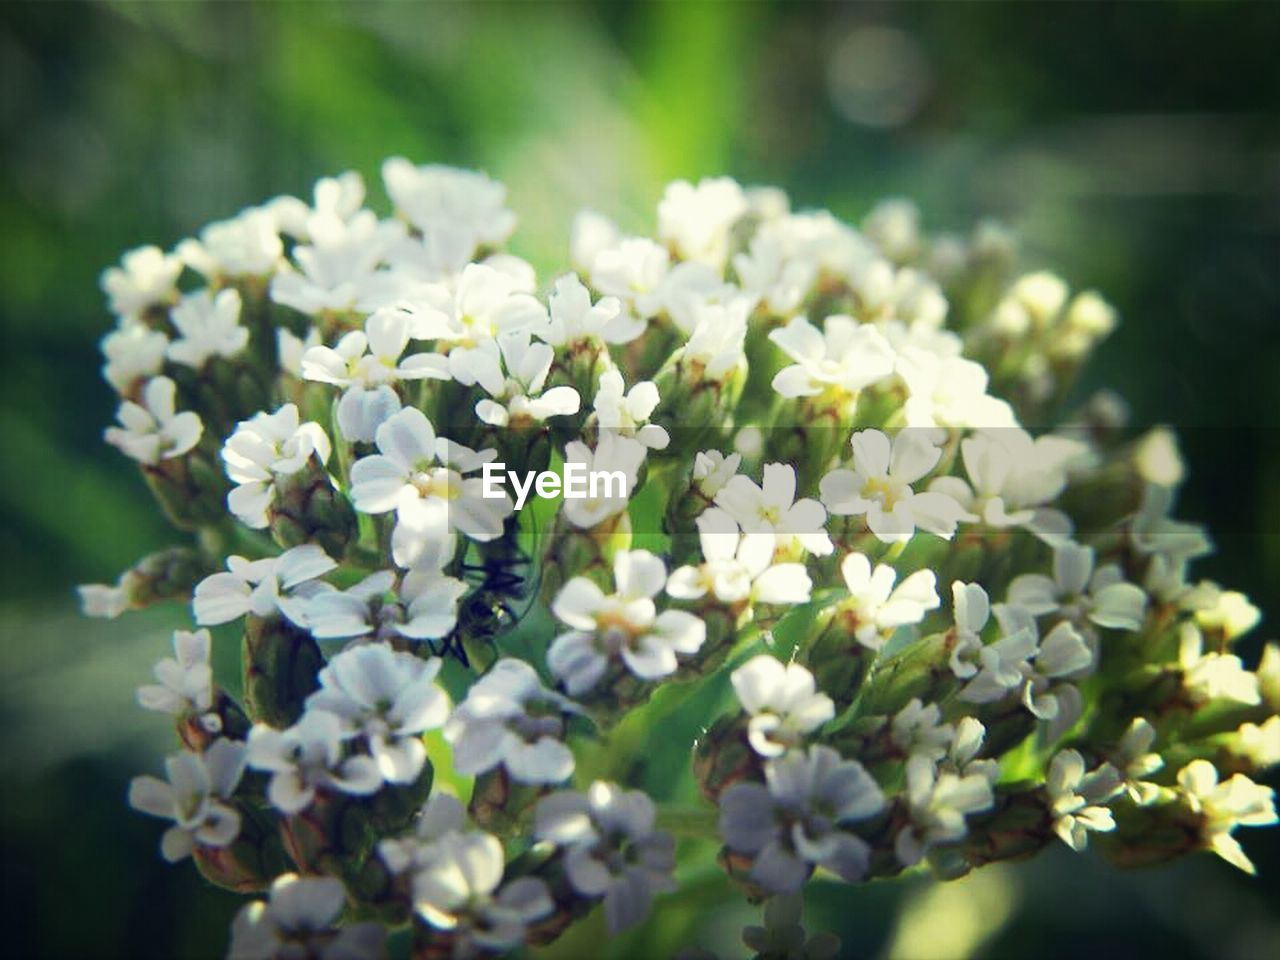 flower, nature, growth, plant, beauty in nature, spring, blooming, fragility, freshness, outdoors, no people, day, close-up, flower head